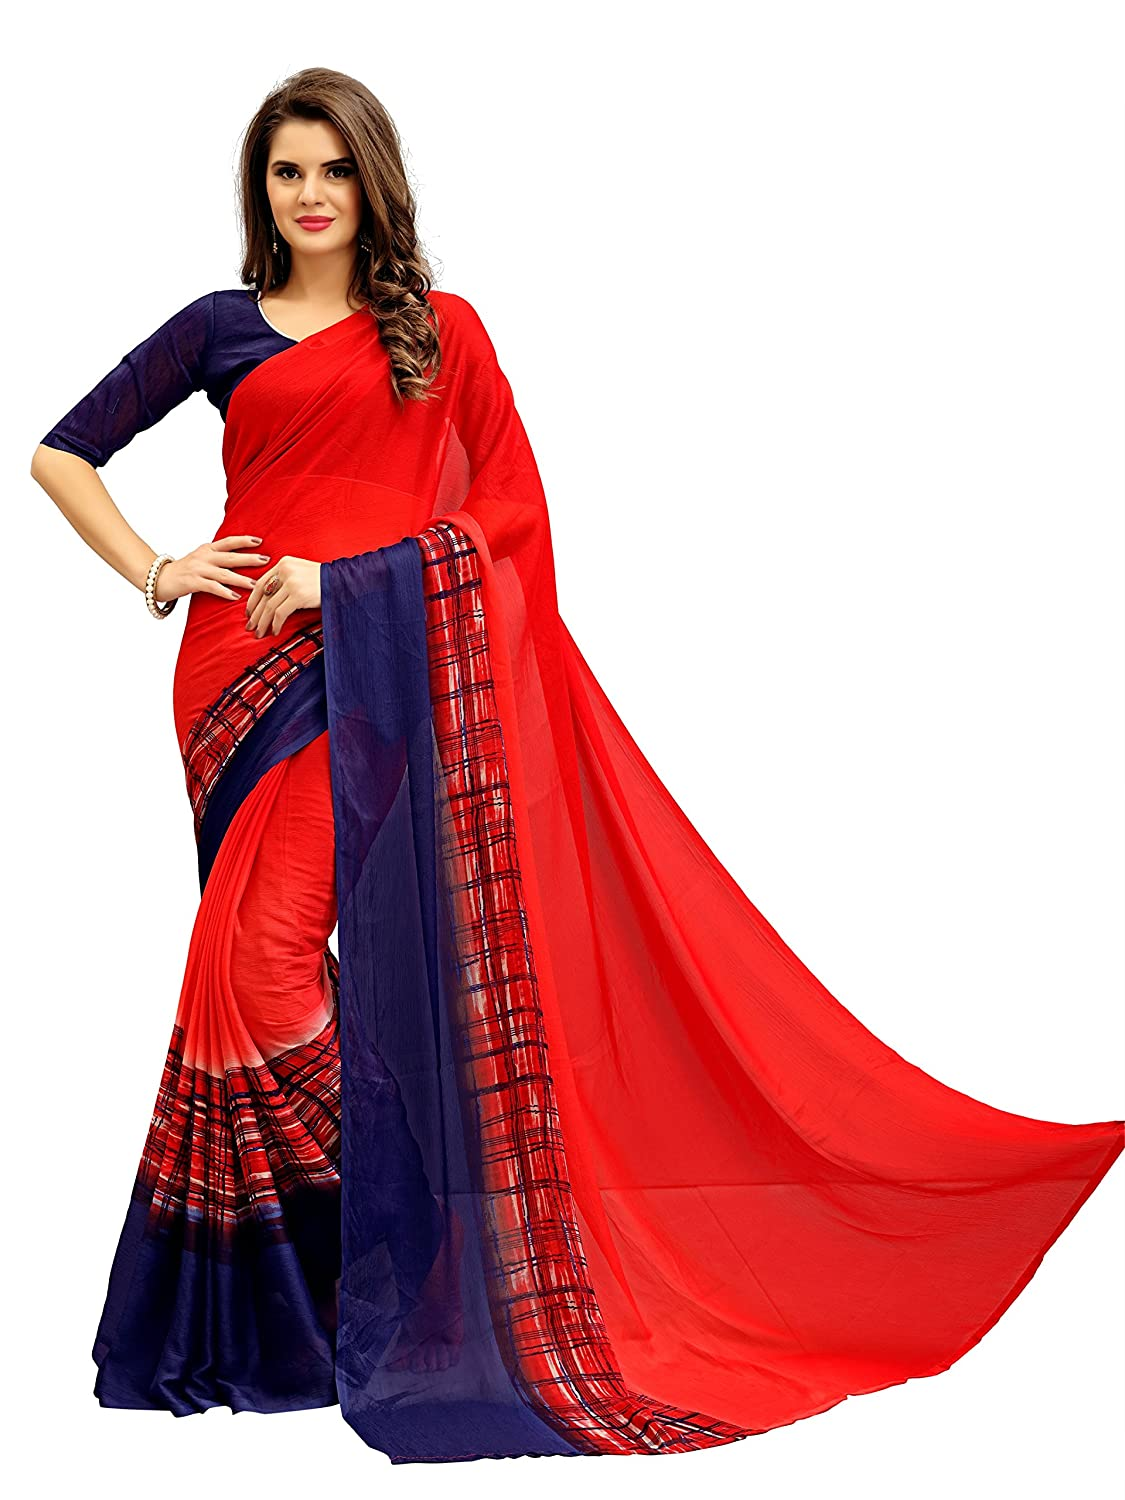 Women's Chiffon Saree With Blouse Piece